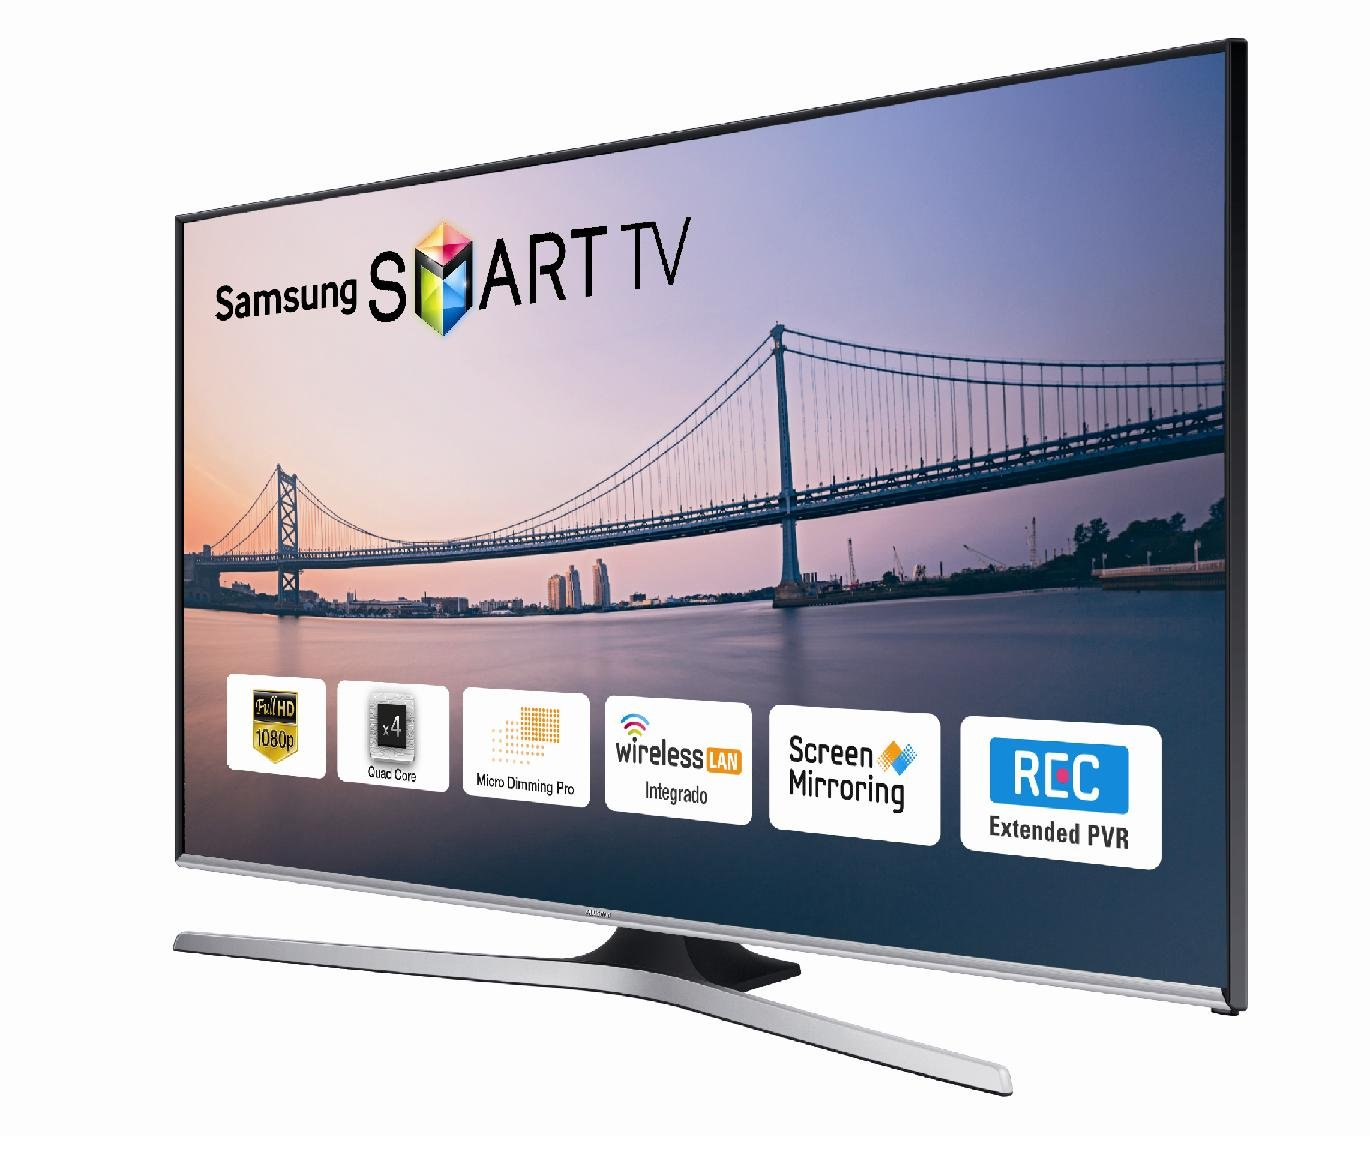 TV LED 40 Samsung UE40J5500 Full HD, 400 Hz PQI y Smart TV: Amazon.es: Electrónica